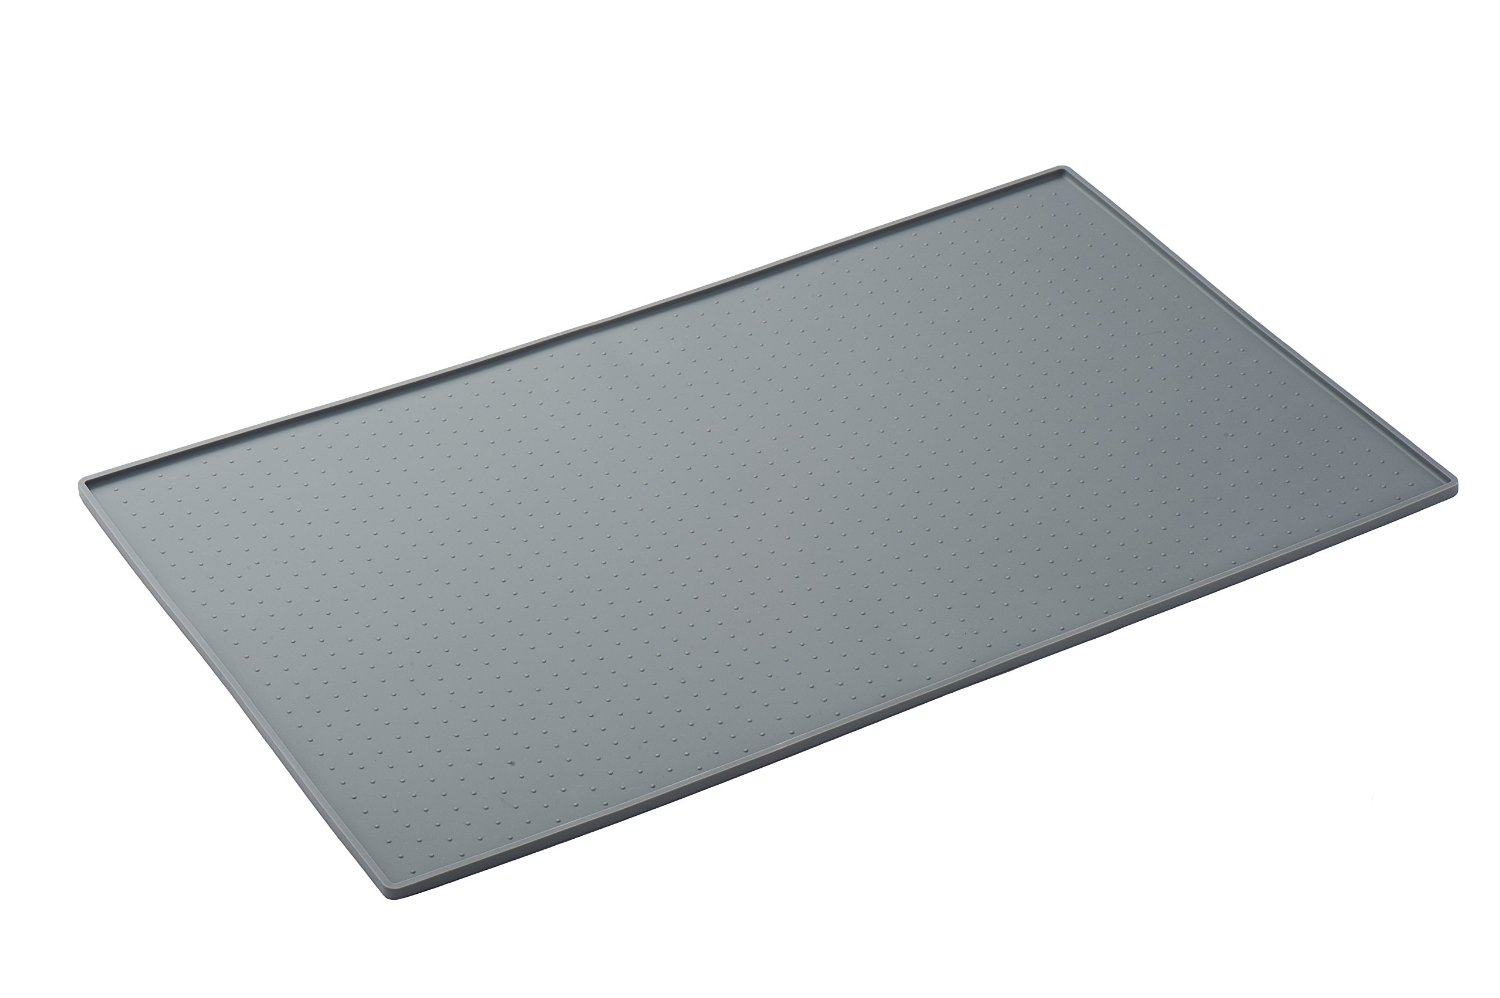 mustafa bali pet the bowl unp products dog gray mats mat